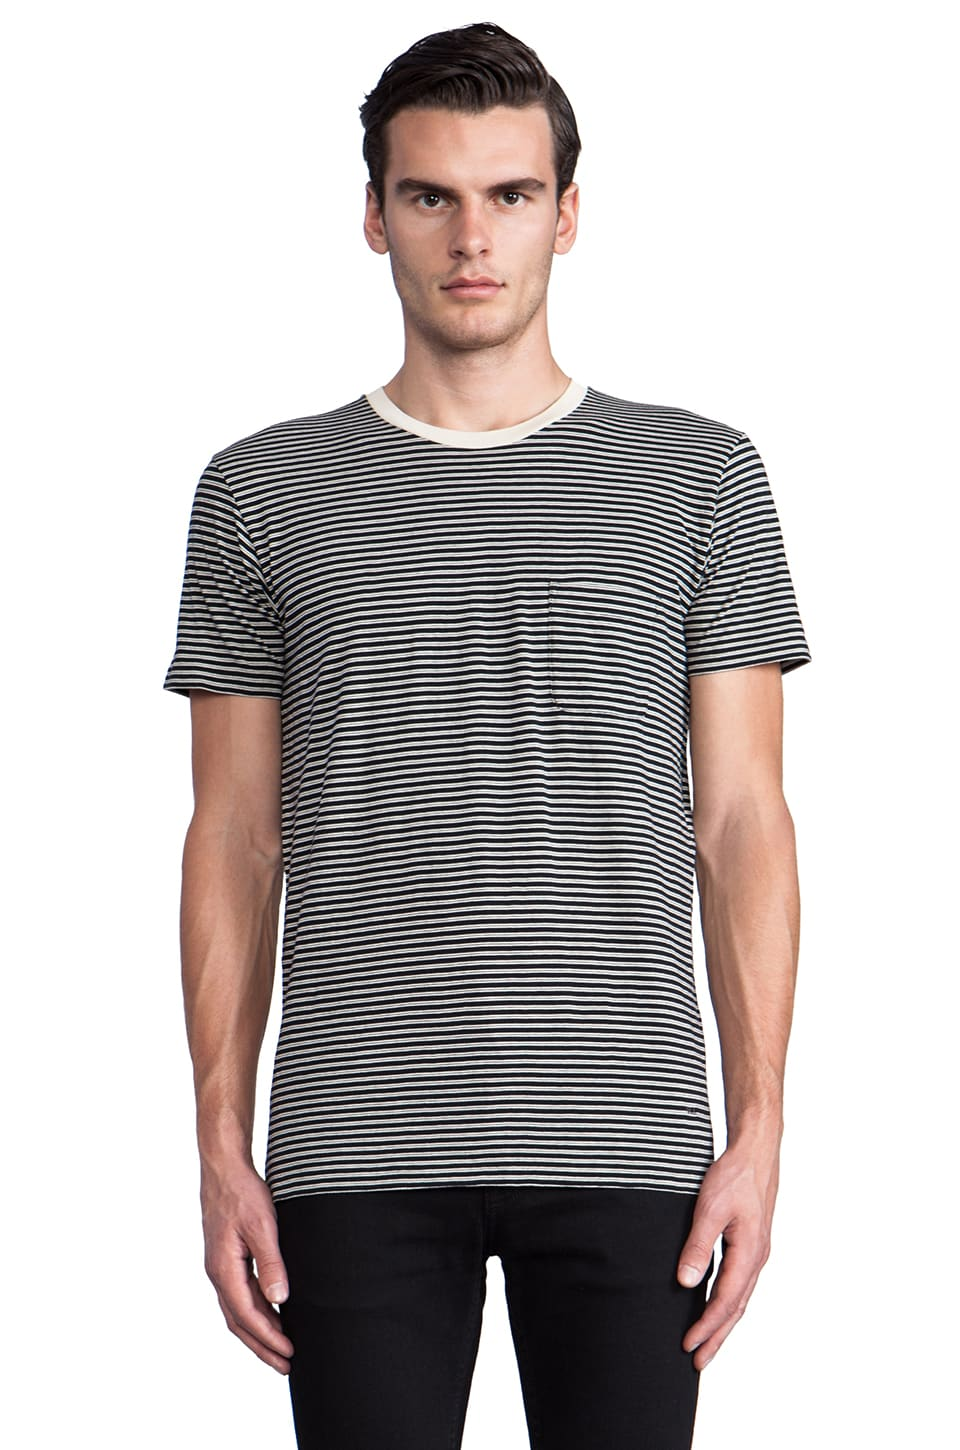 Marc by Marc Jacobs Liverpool Stripe Tee in Moonless Night